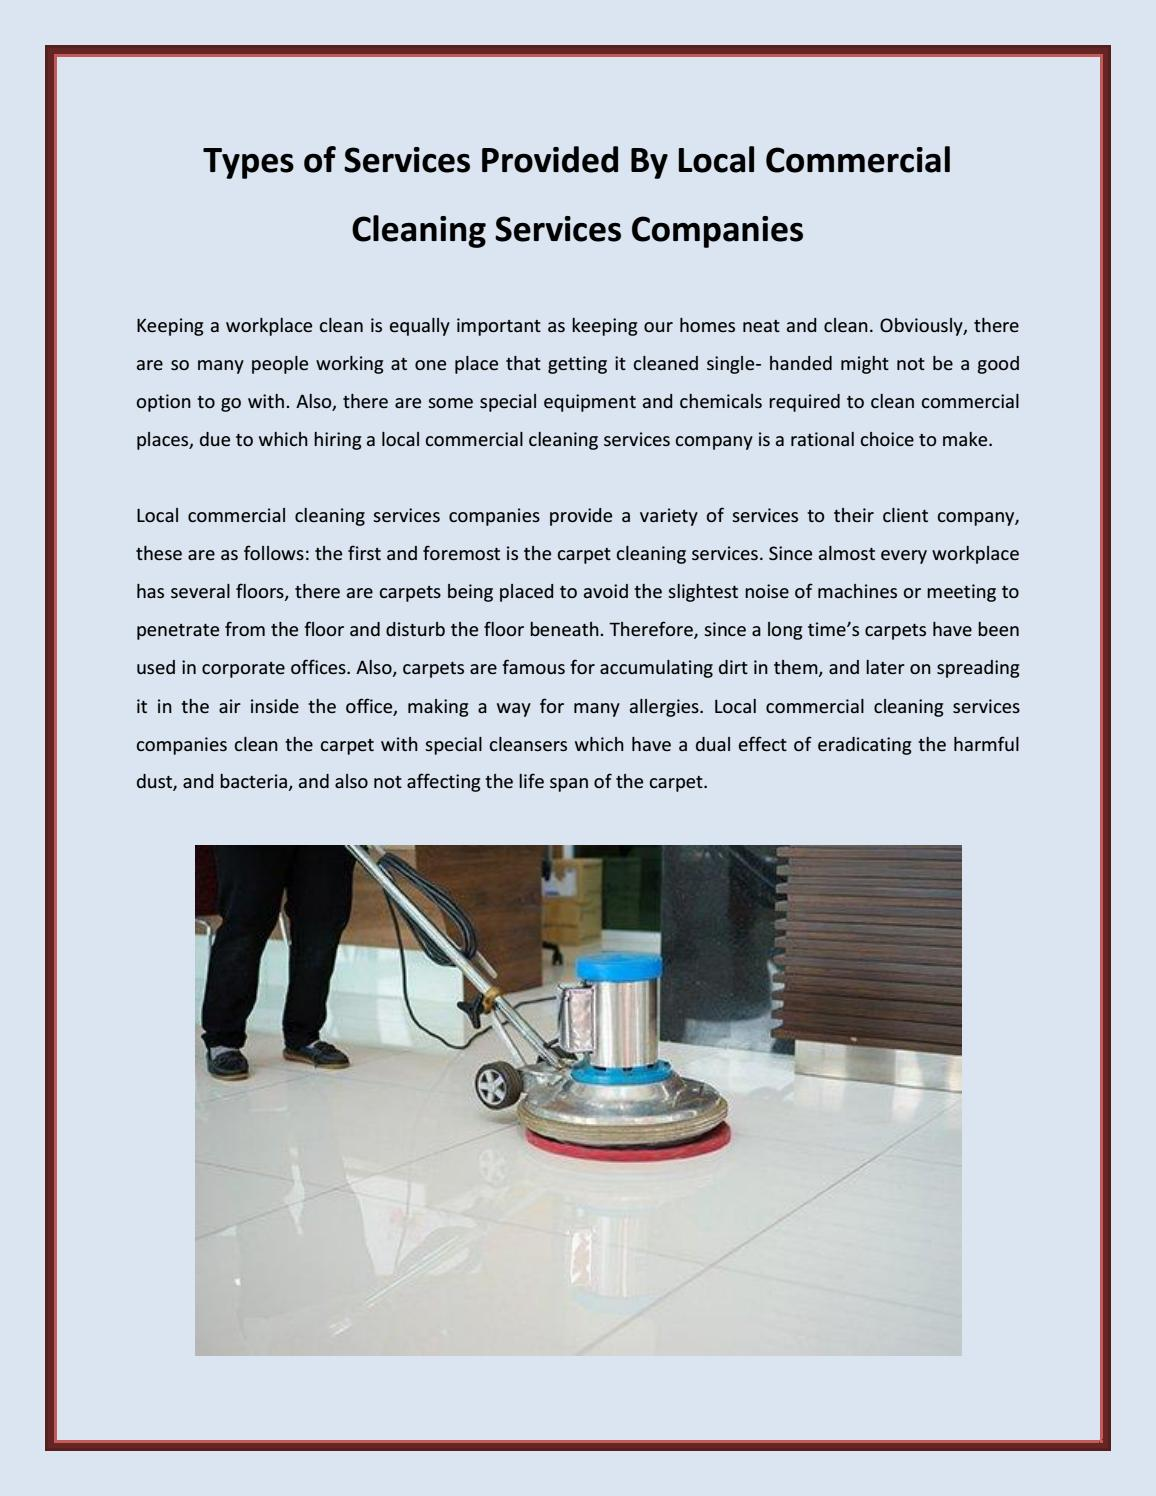 Types of Services Provided By Local Commercial Cleaning